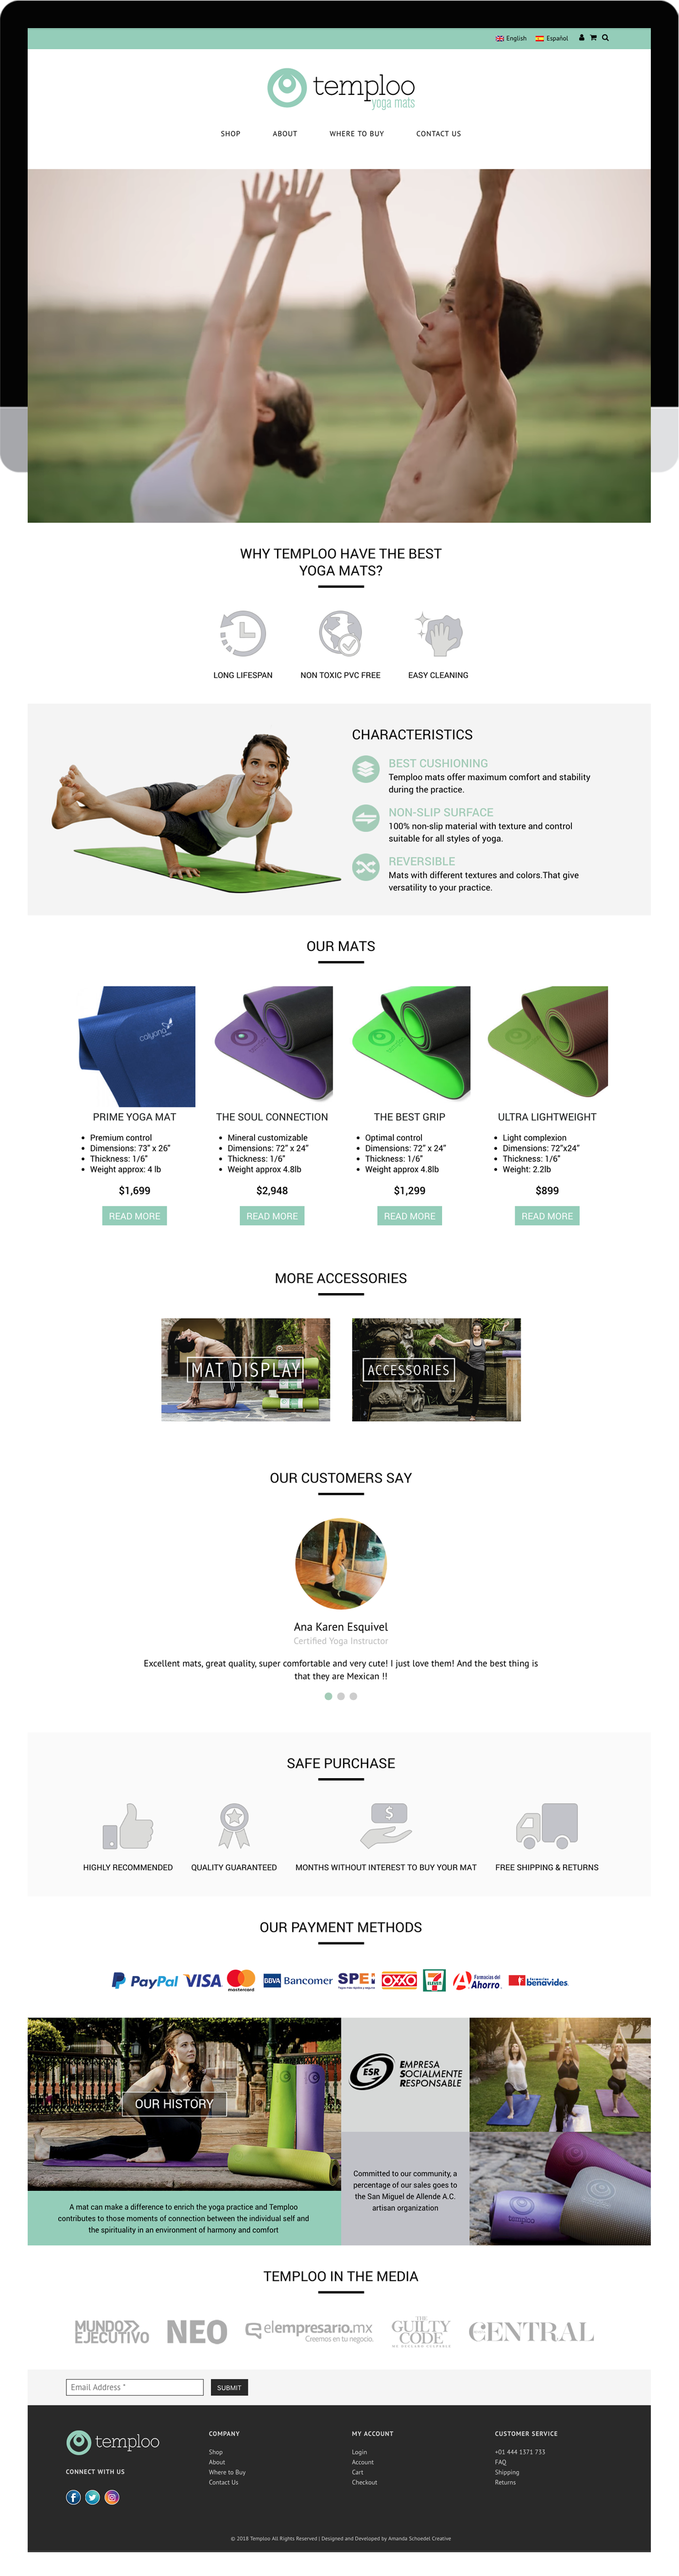 E-commerce design and development built with WordPress and WooCommerce